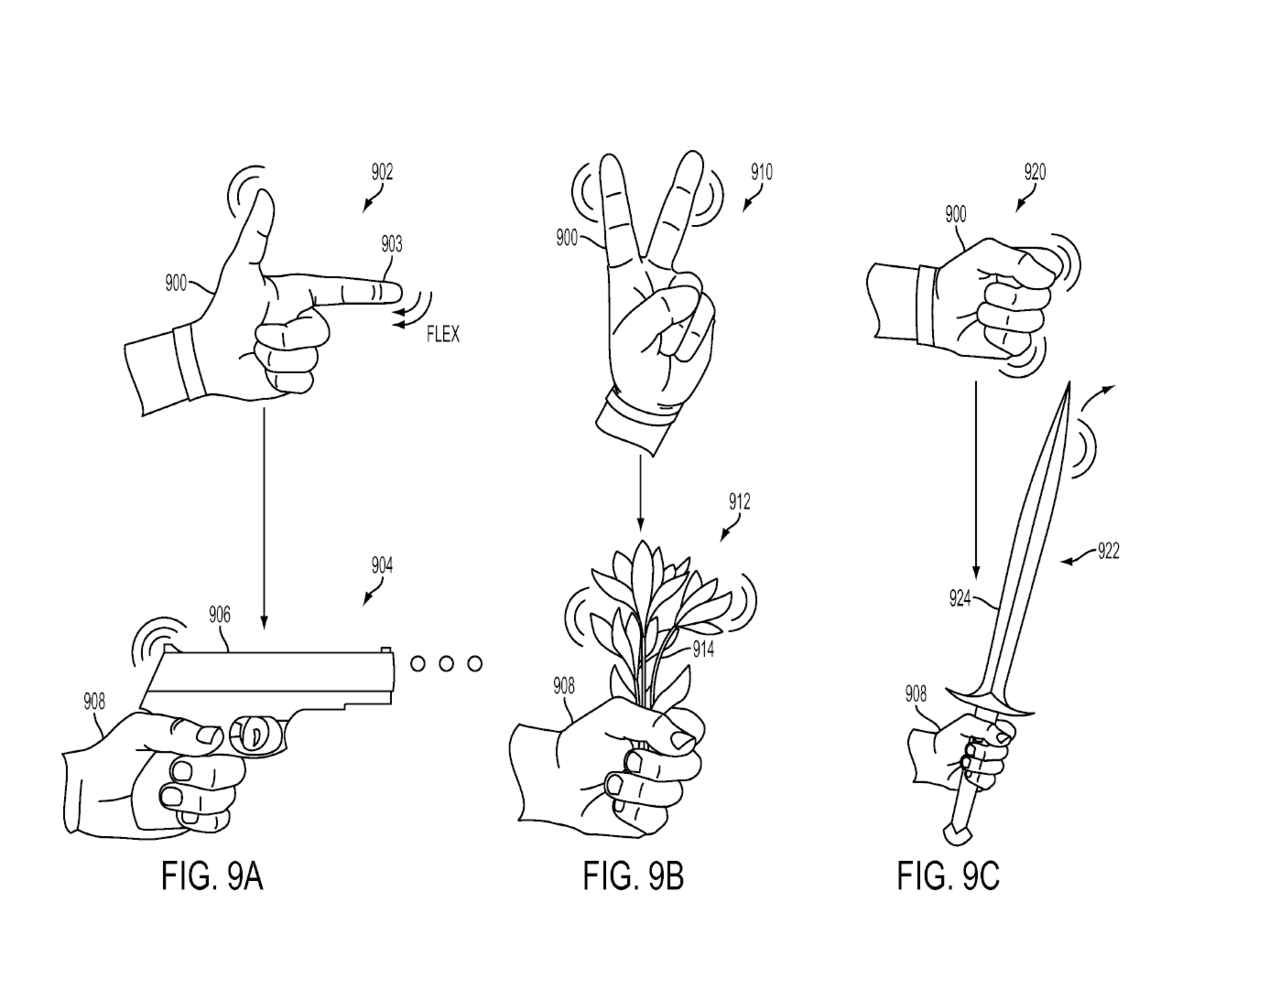 3013722 2 Sony File Patent For New PlayStation Glove Controller